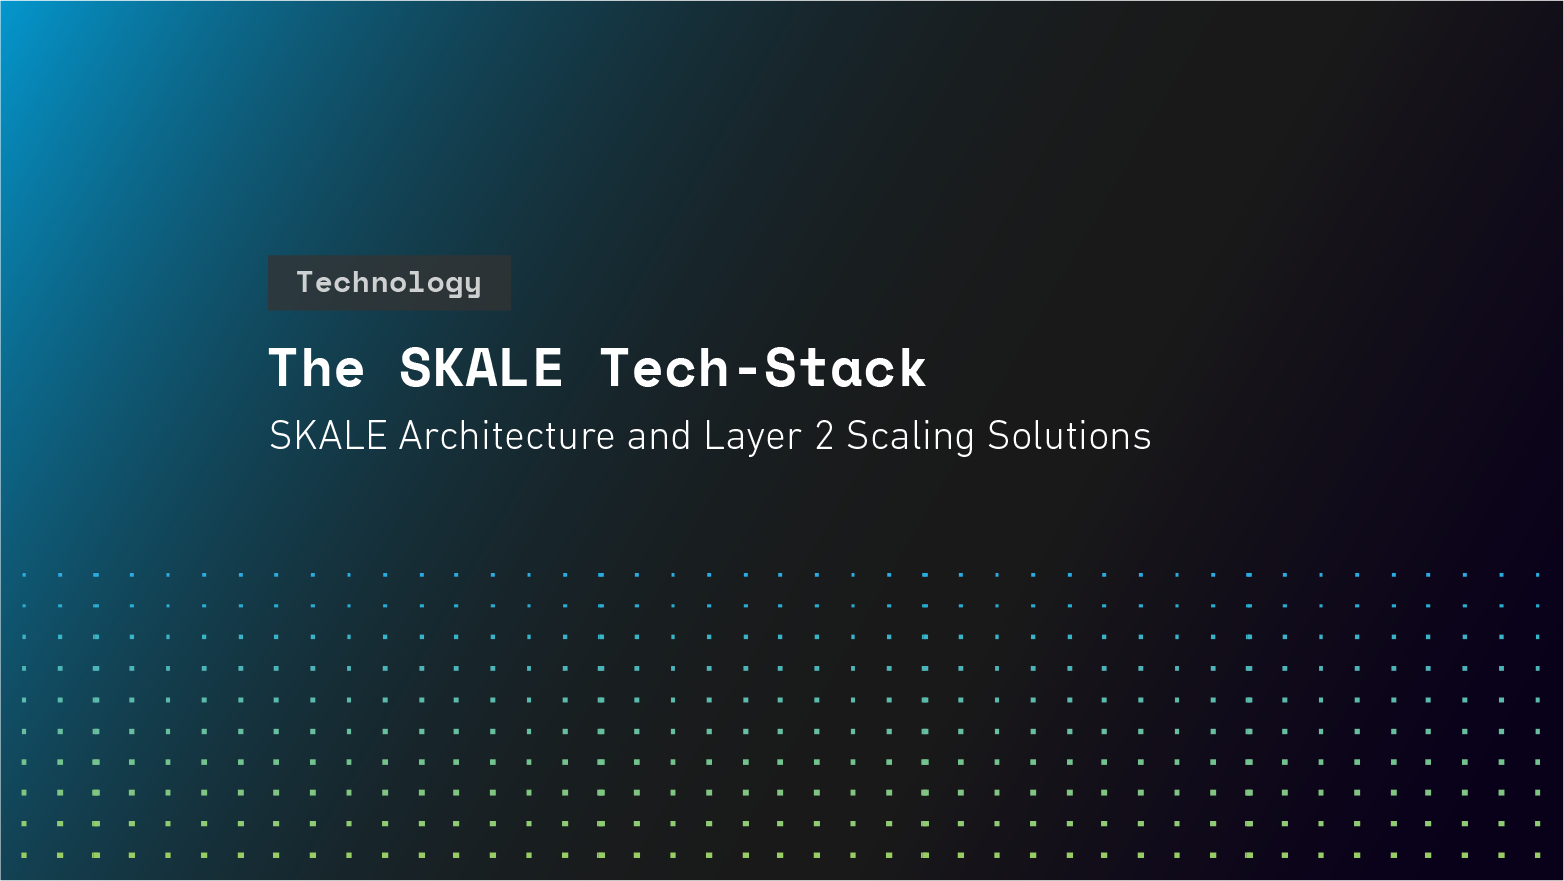 The SKALE Tech-Stack